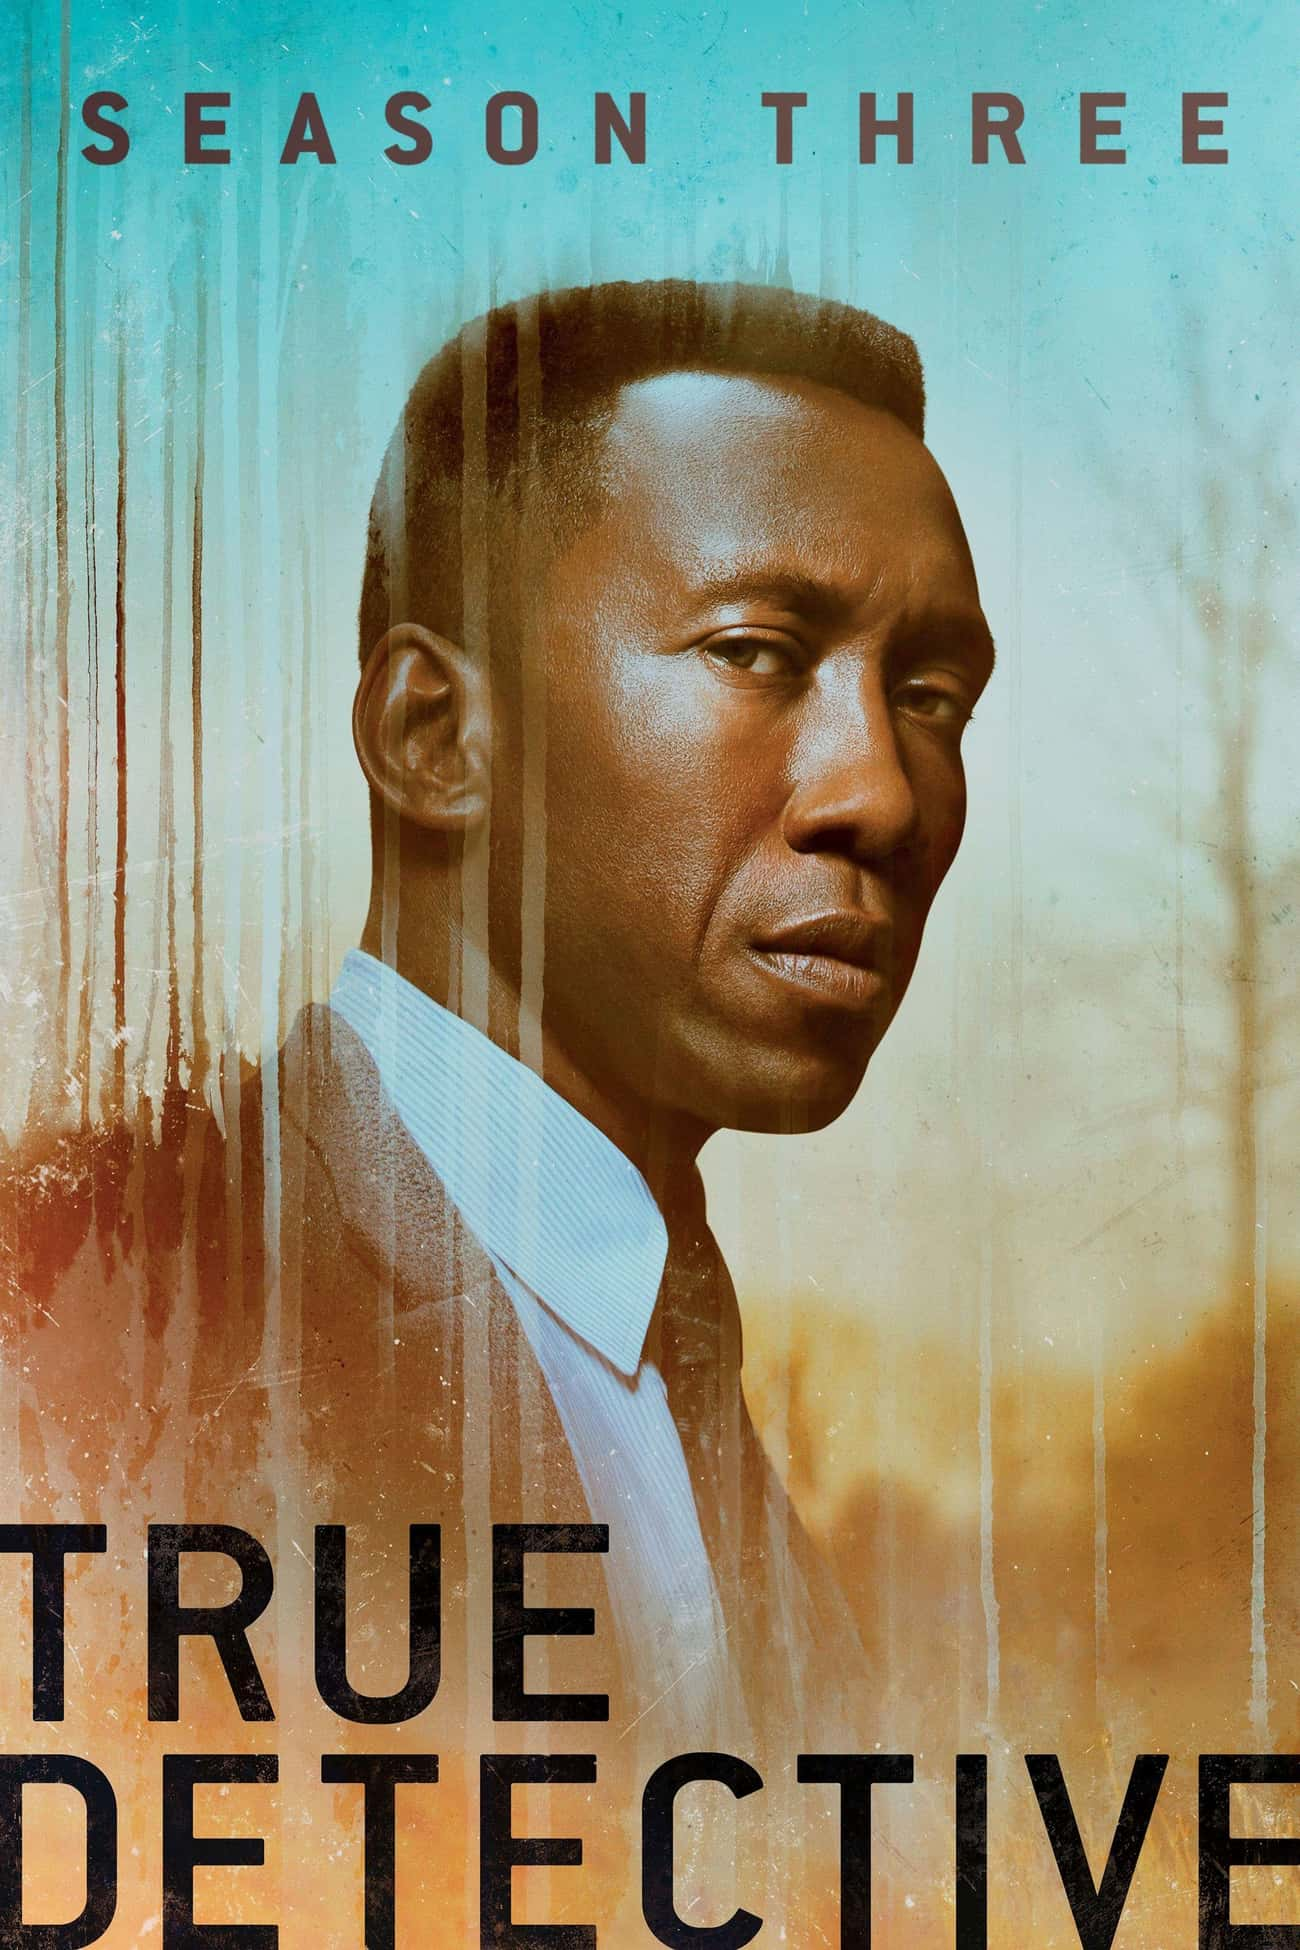 True Detective - Season 3 is listed (or ranked) 2 on the list The Best Seasons of True Detective